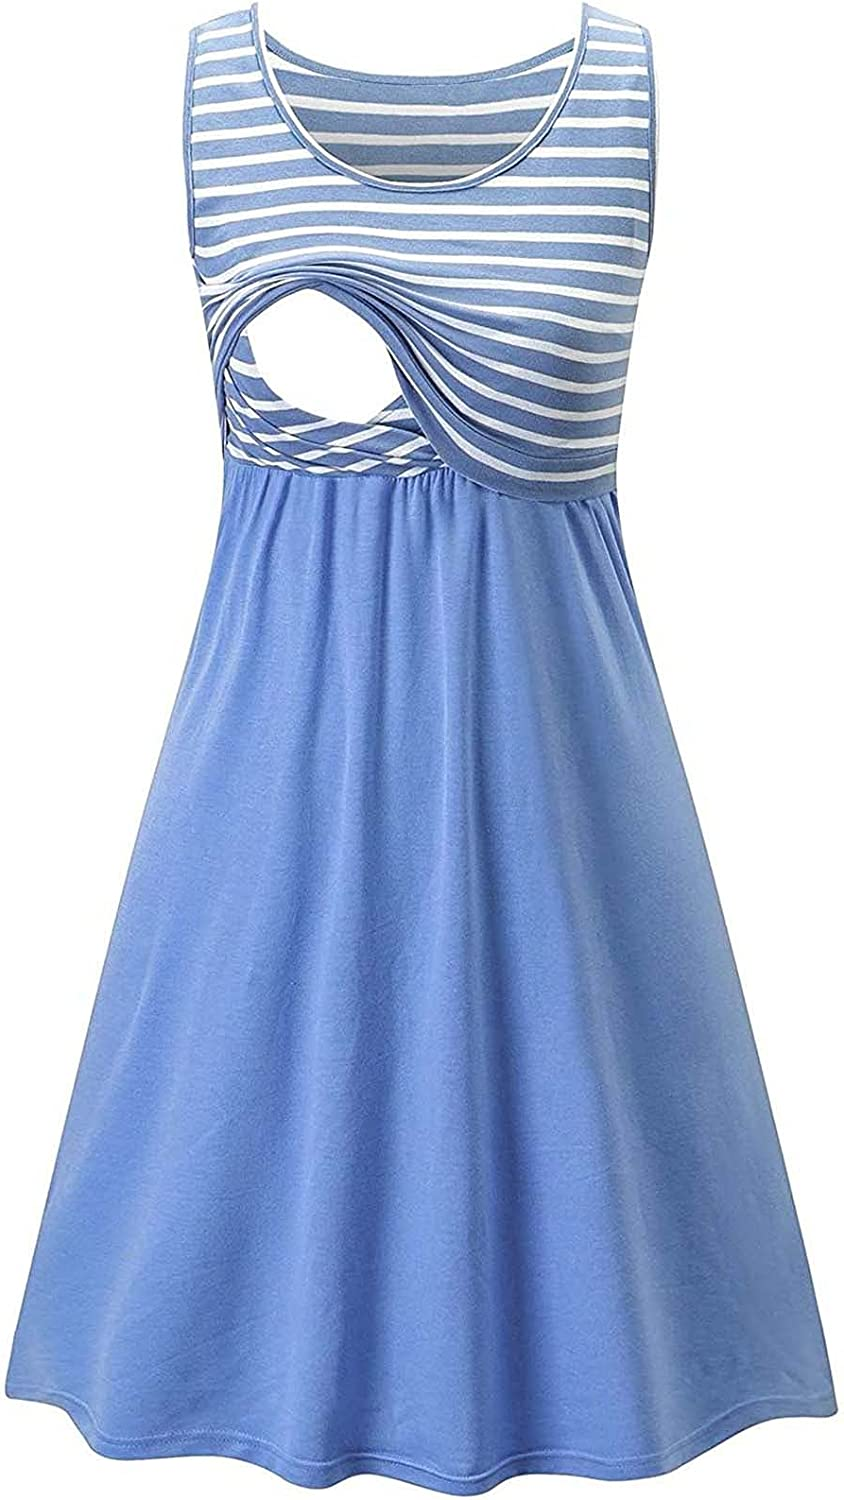 GoodLock Pregnant Max 70% OFF Women We OFFer at cheap prices Striped Stitching Tank Comfy Soft Dress